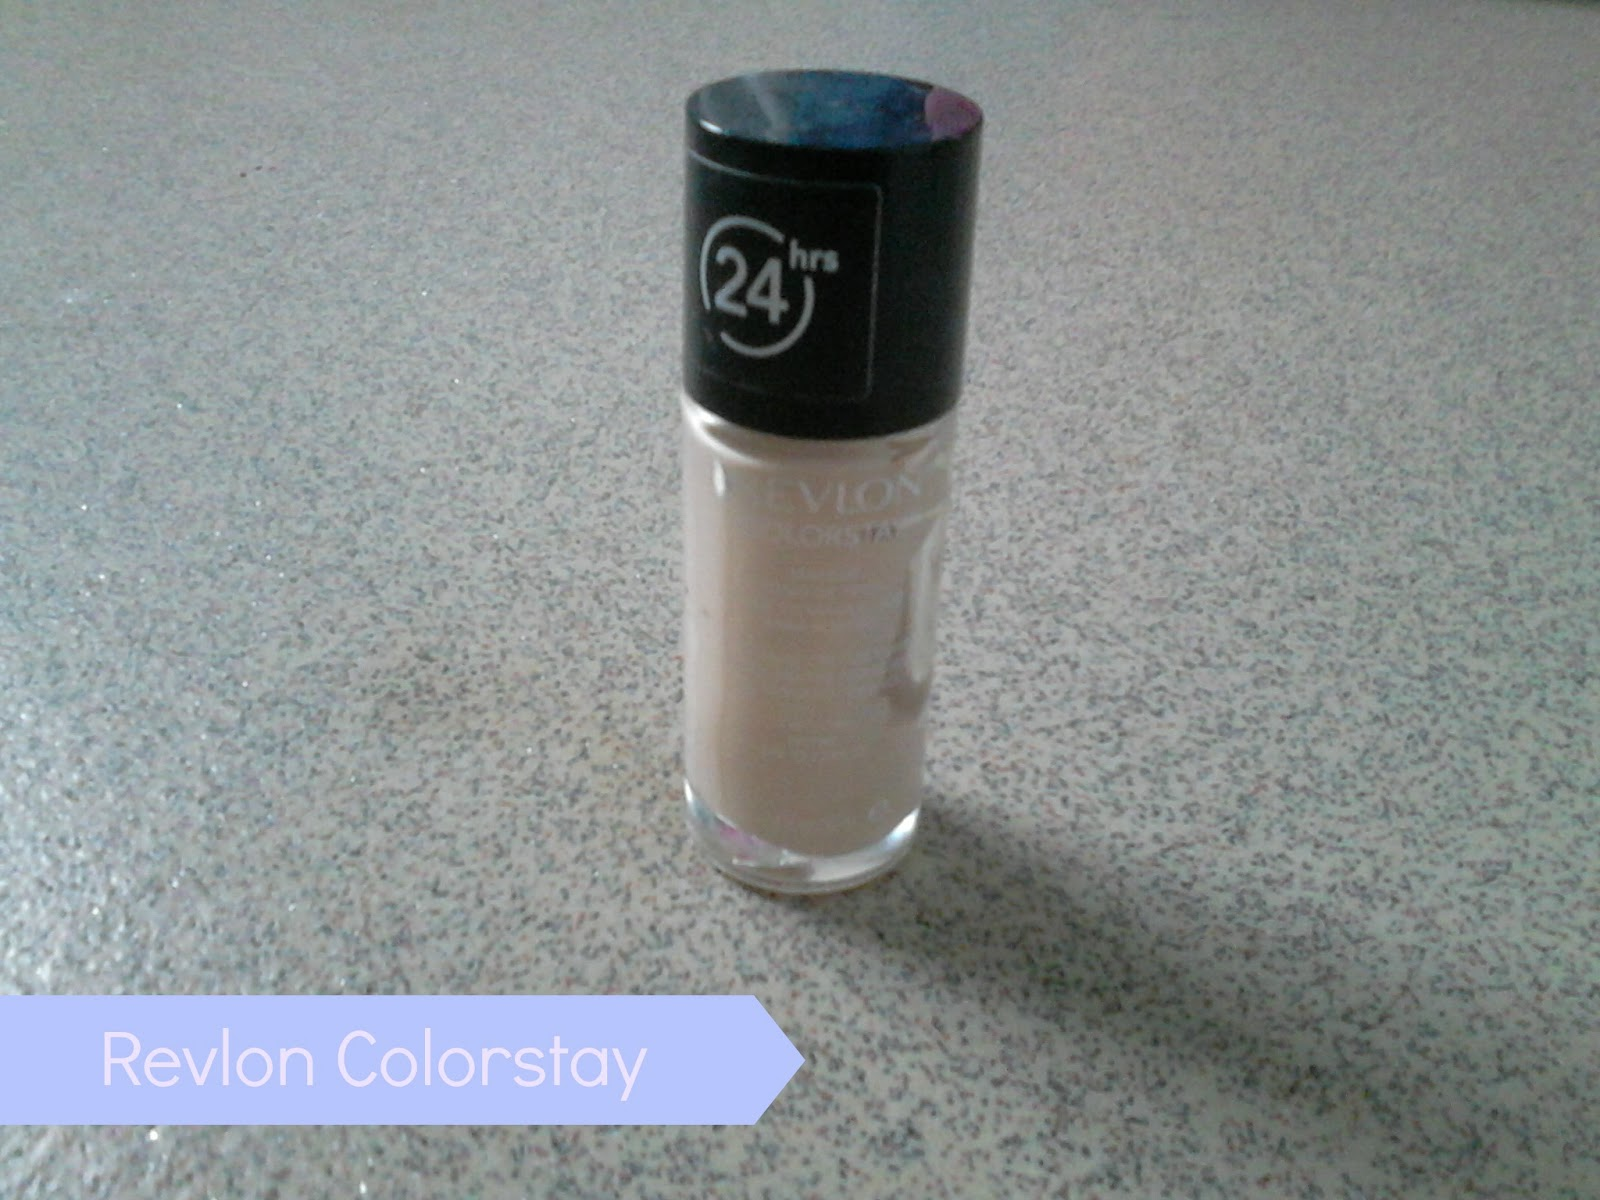 Revlon Colorstay Foundation in Ivory